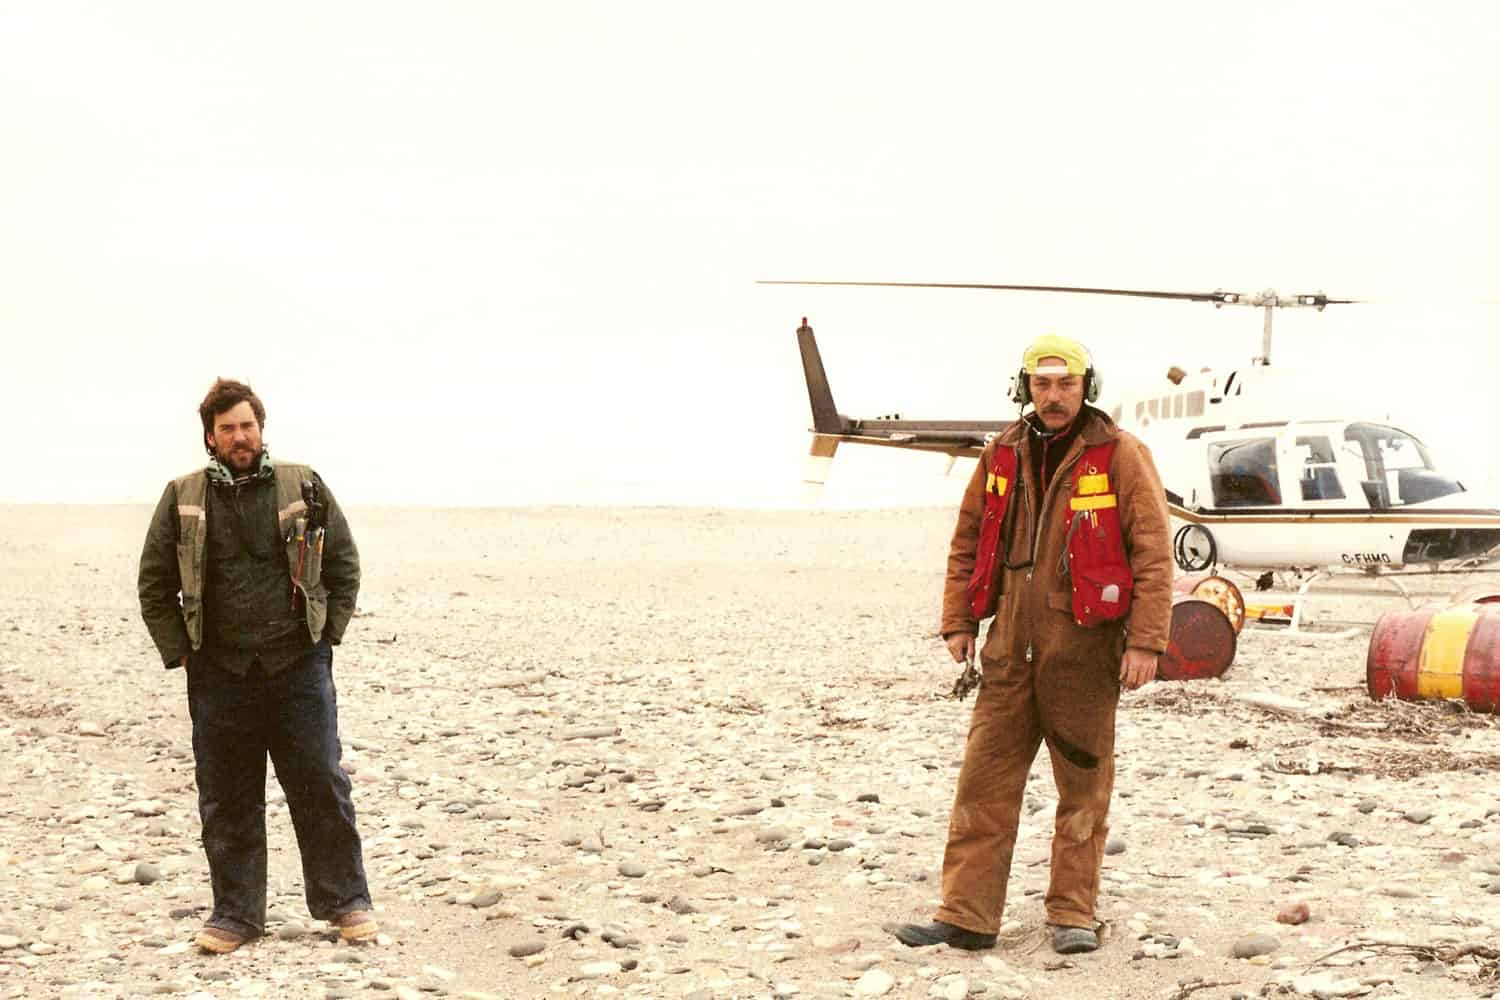 C. Cryderman and T. Connolly waiting for the Helicopter to refuel at DeSalis Bay on Banks Island during the Inuvialuit Boundary survey, 1991.